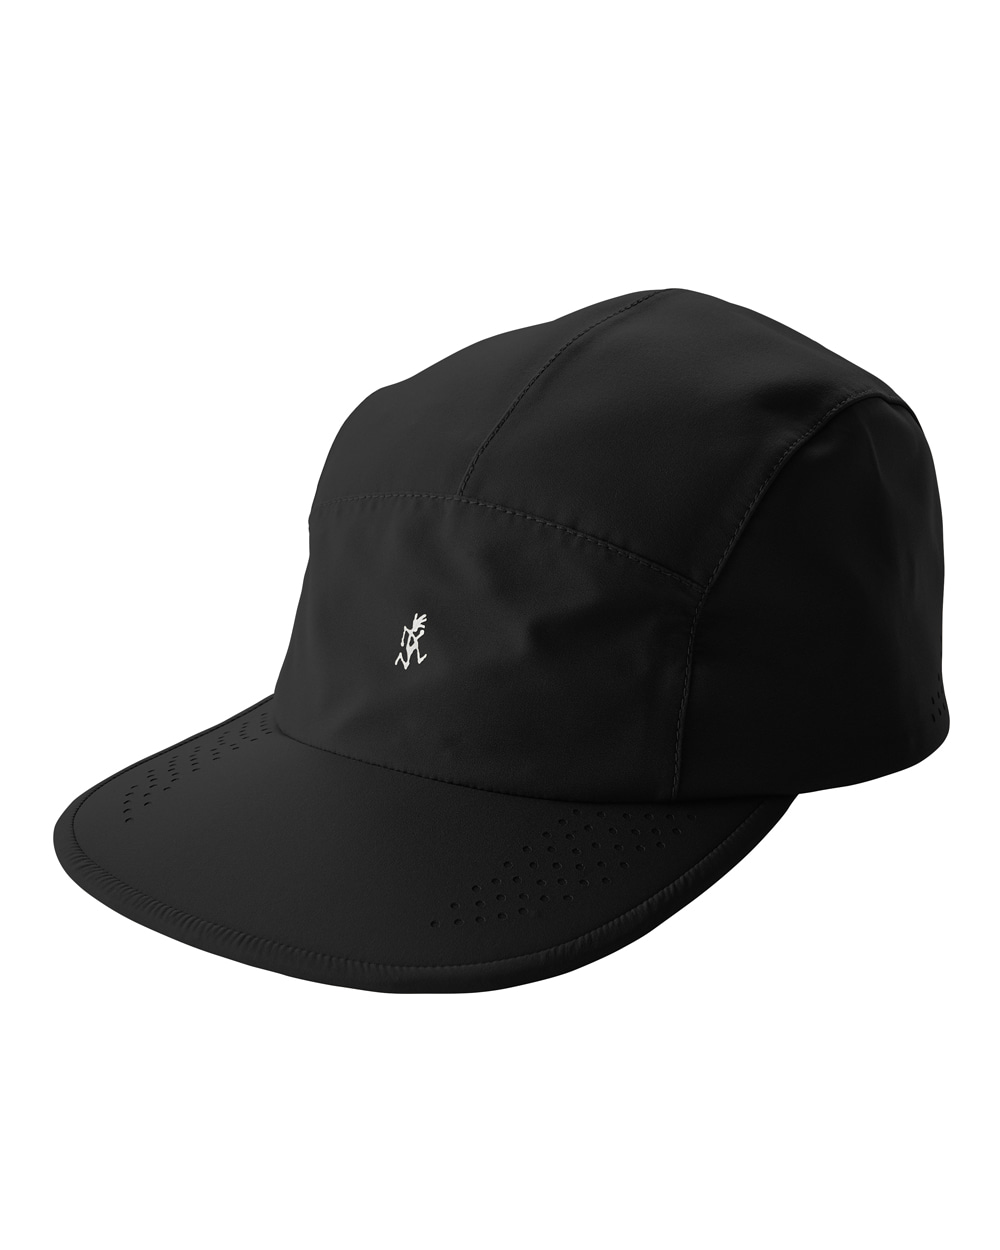 그라미치 3LAYER JET CAP (Black)